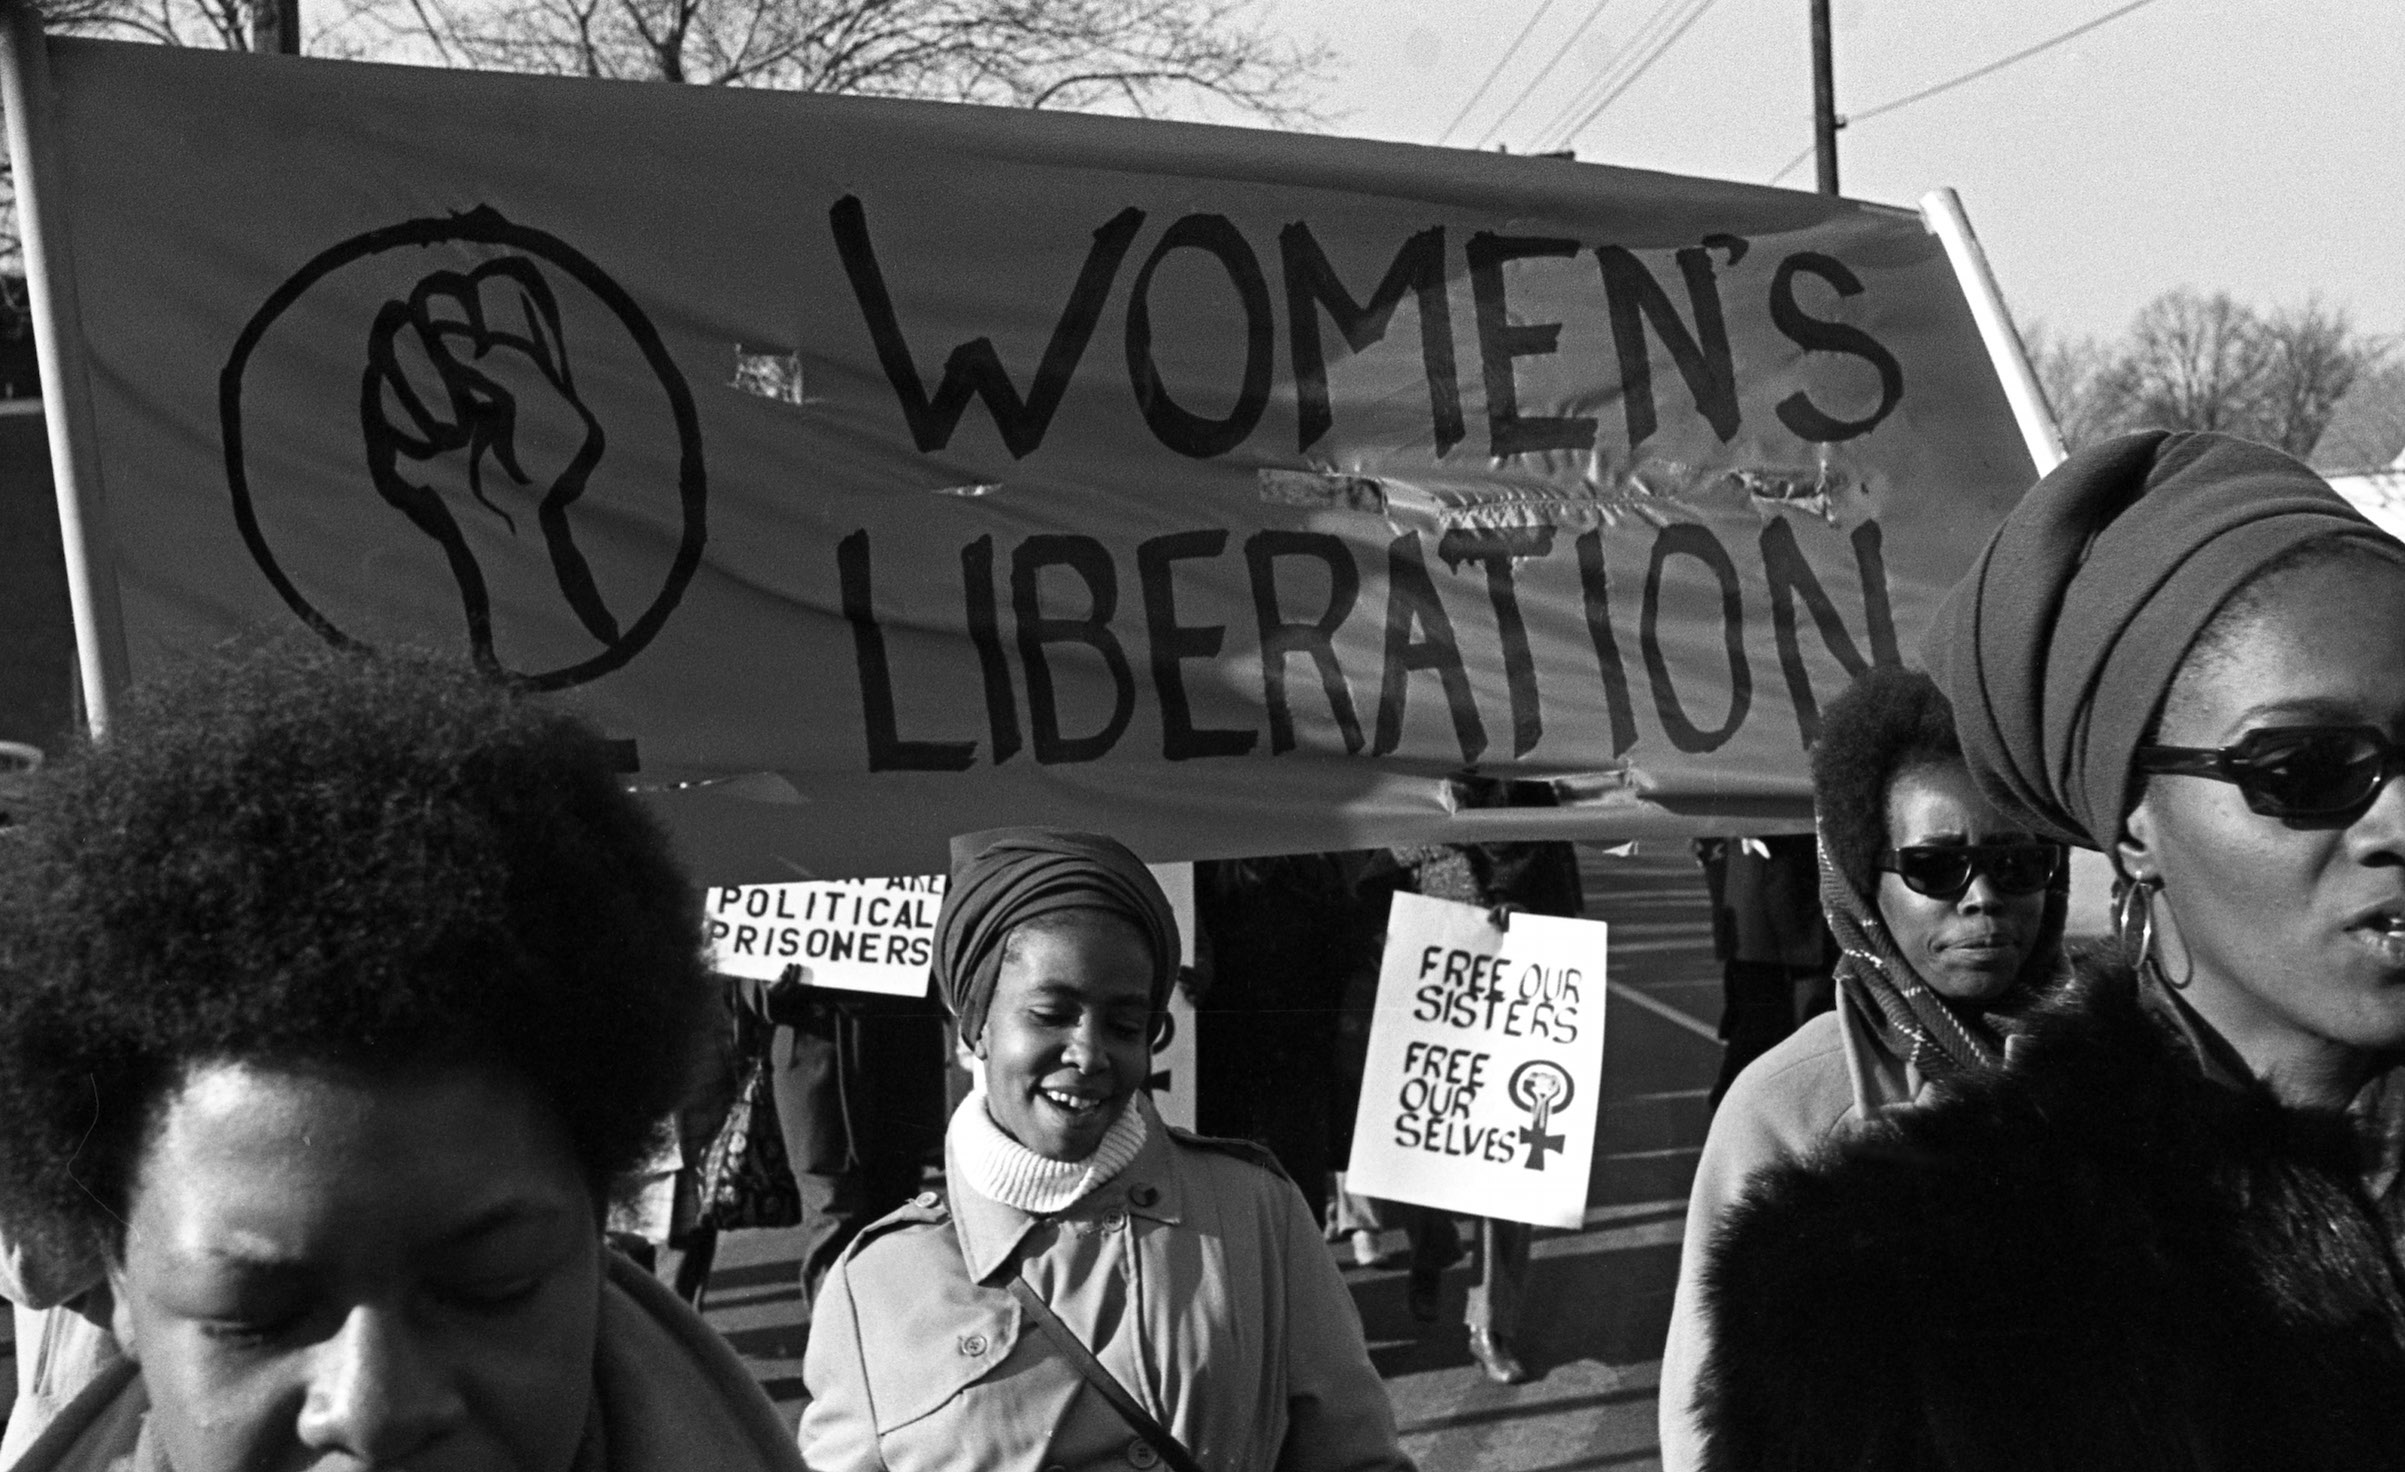 A group of women, under a 'Women's Liberation' banner, march in support of the Black Panther Party, New Haven, Conn., November 1969